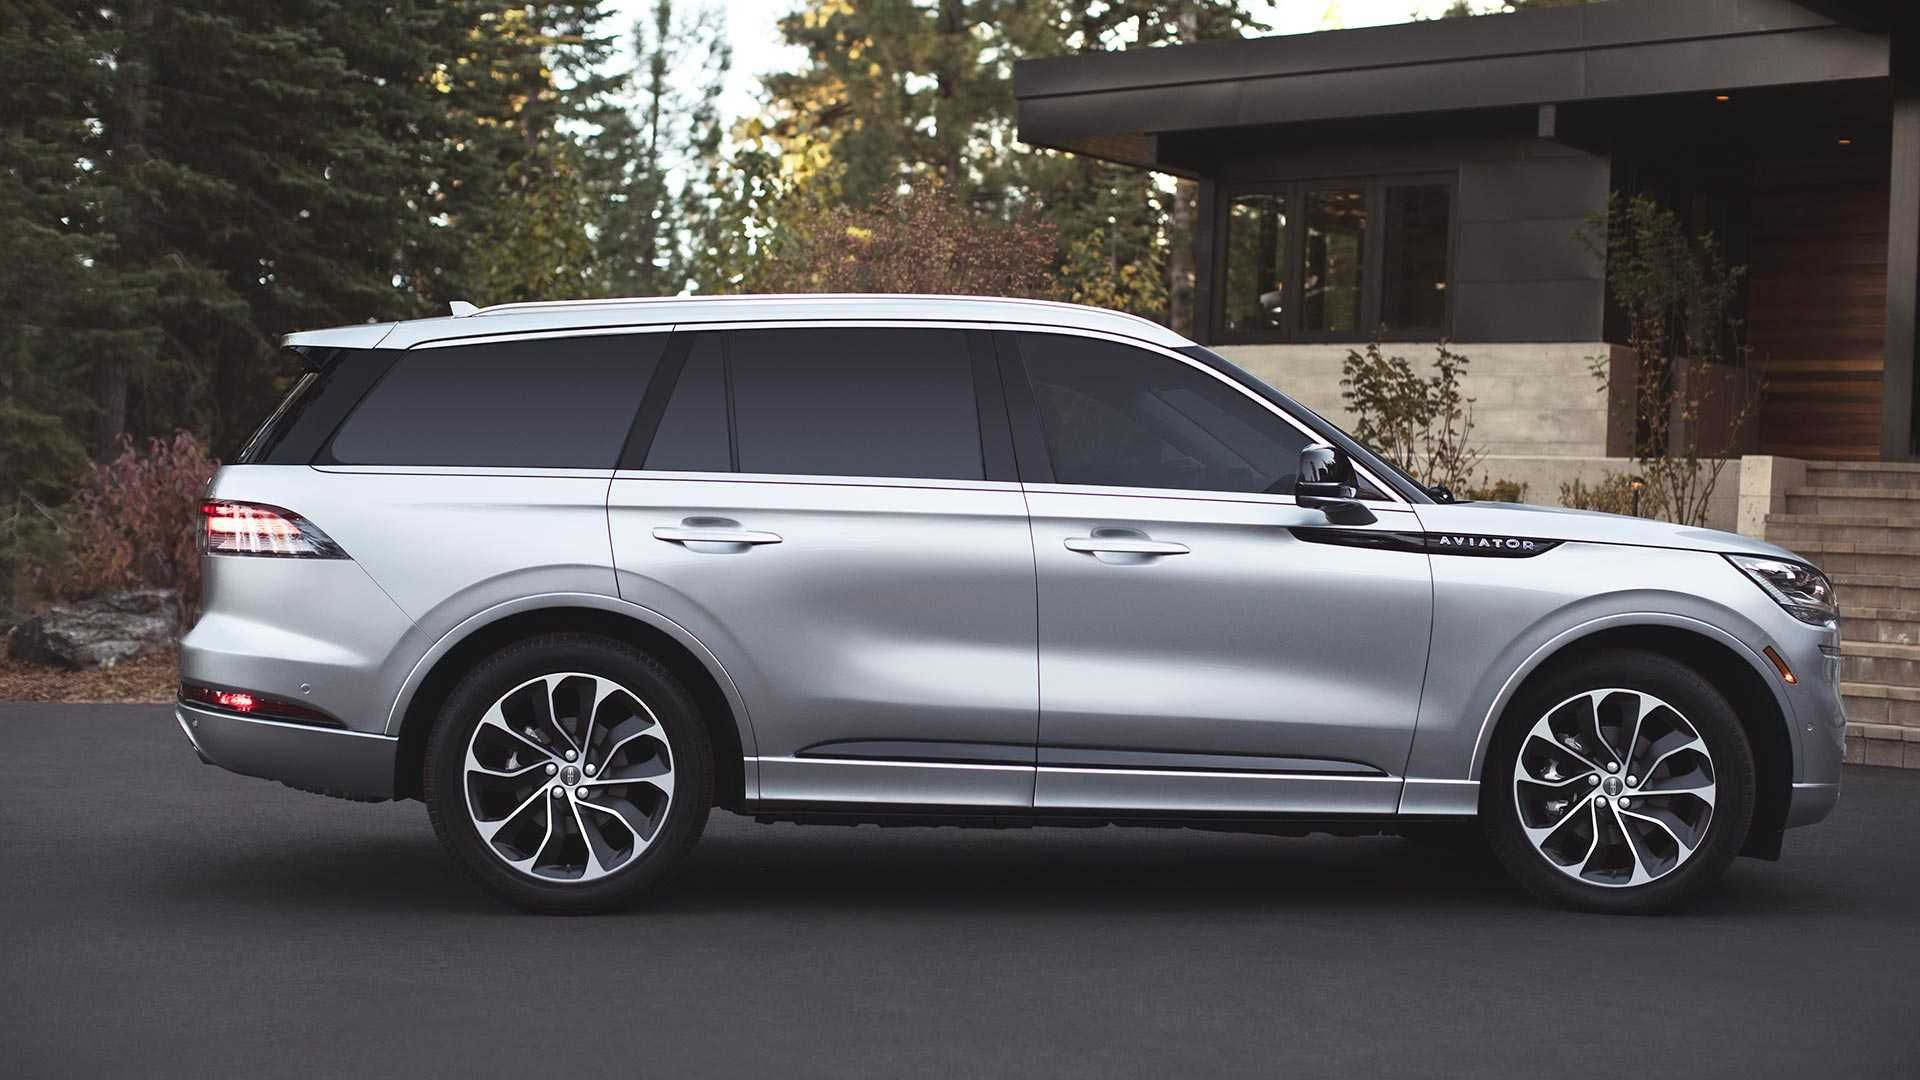 The New Lincoln Aviator Delivers A Strong Stately Appearance